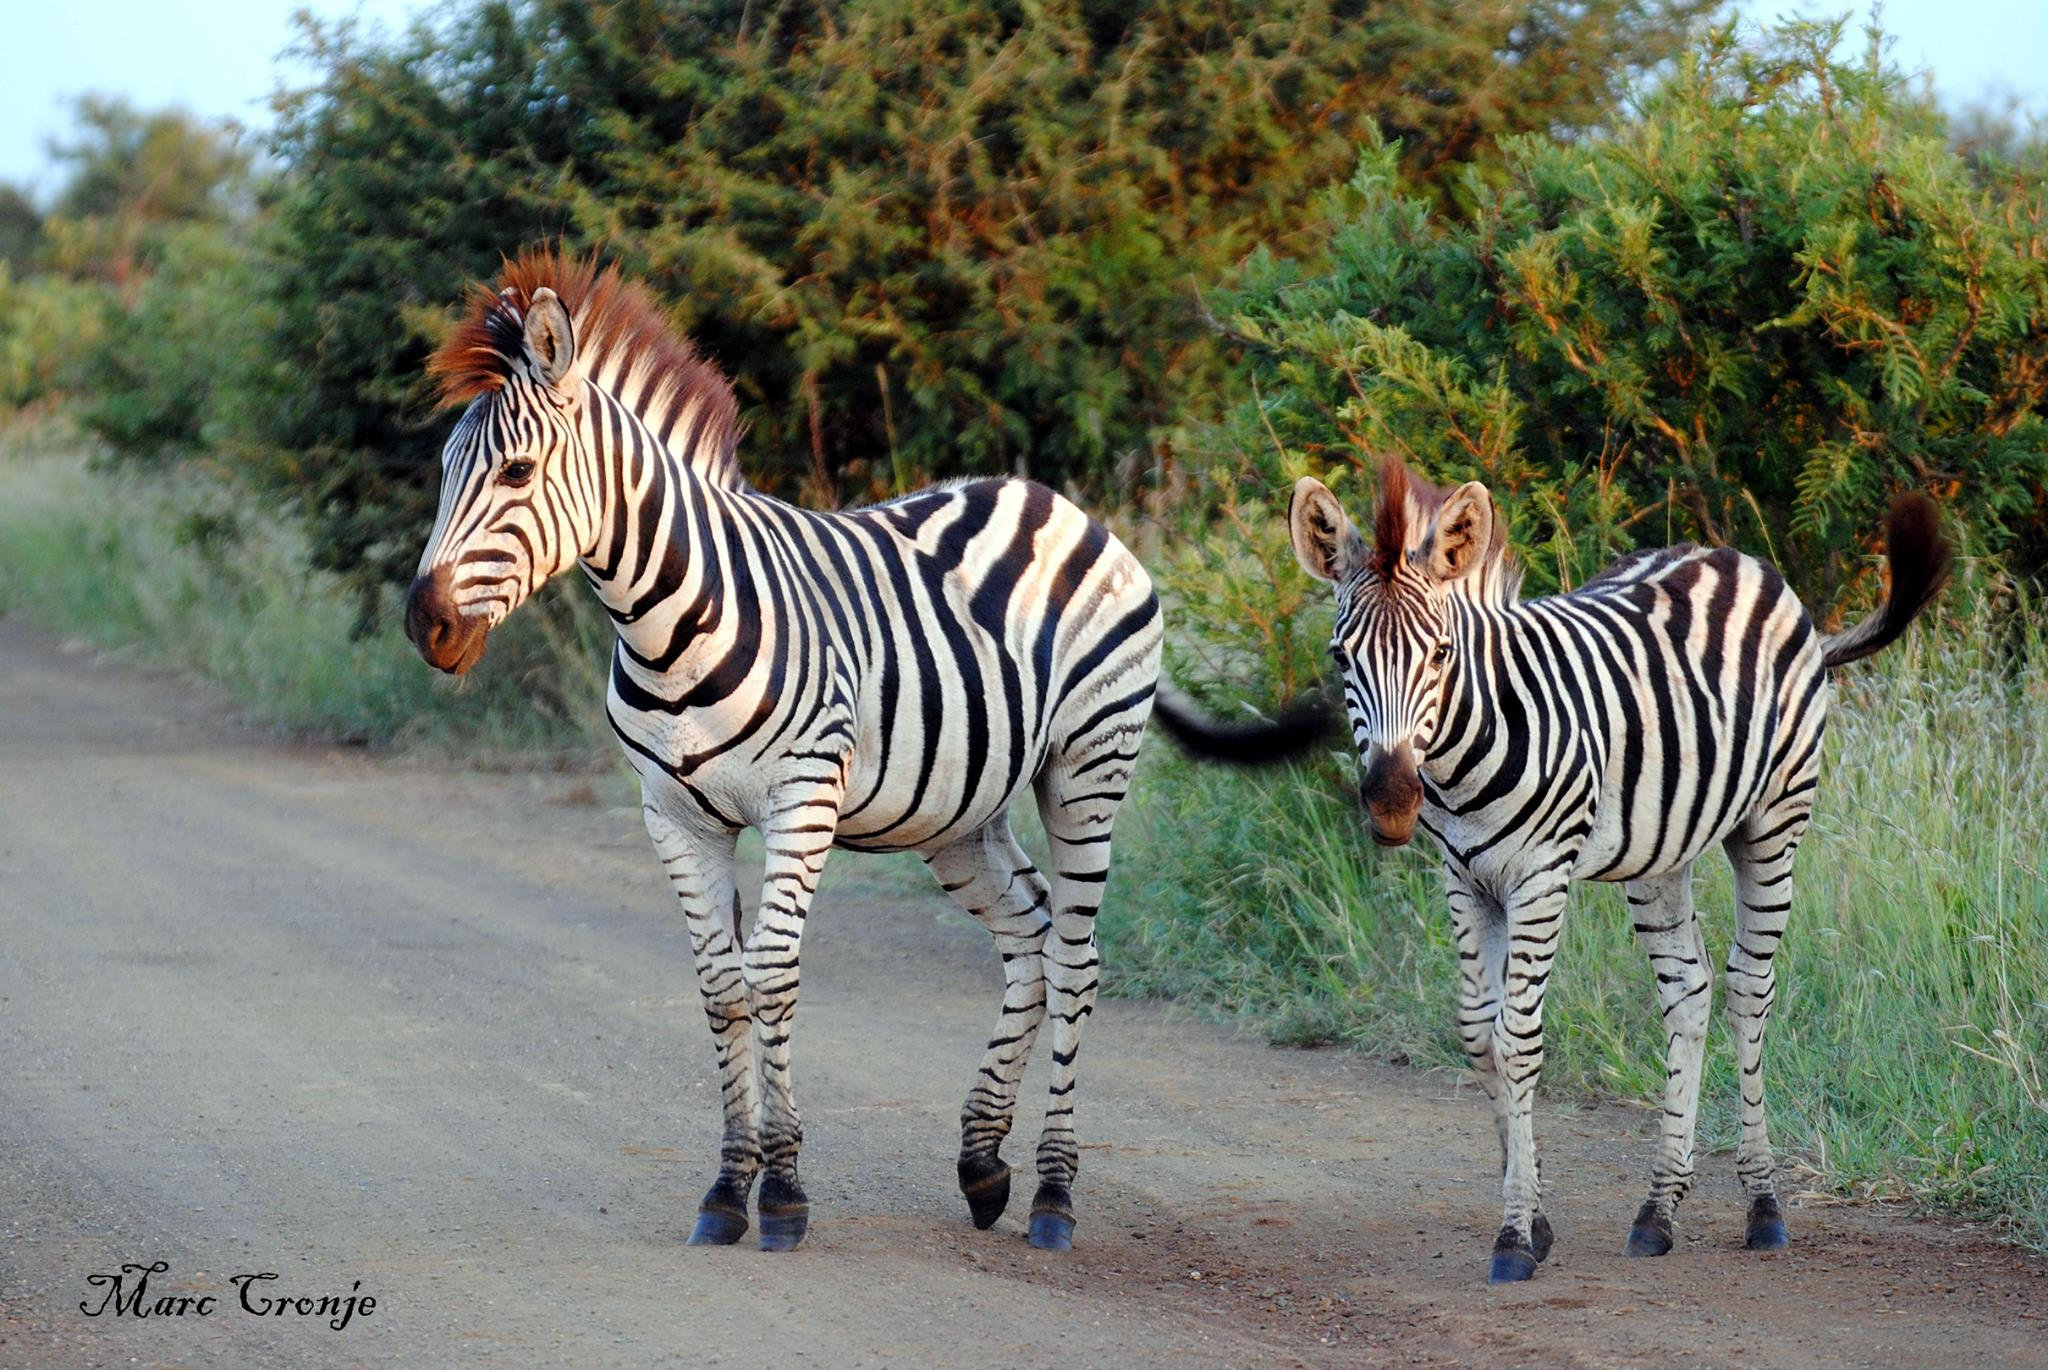 Wildlife Field Guide: Zebra